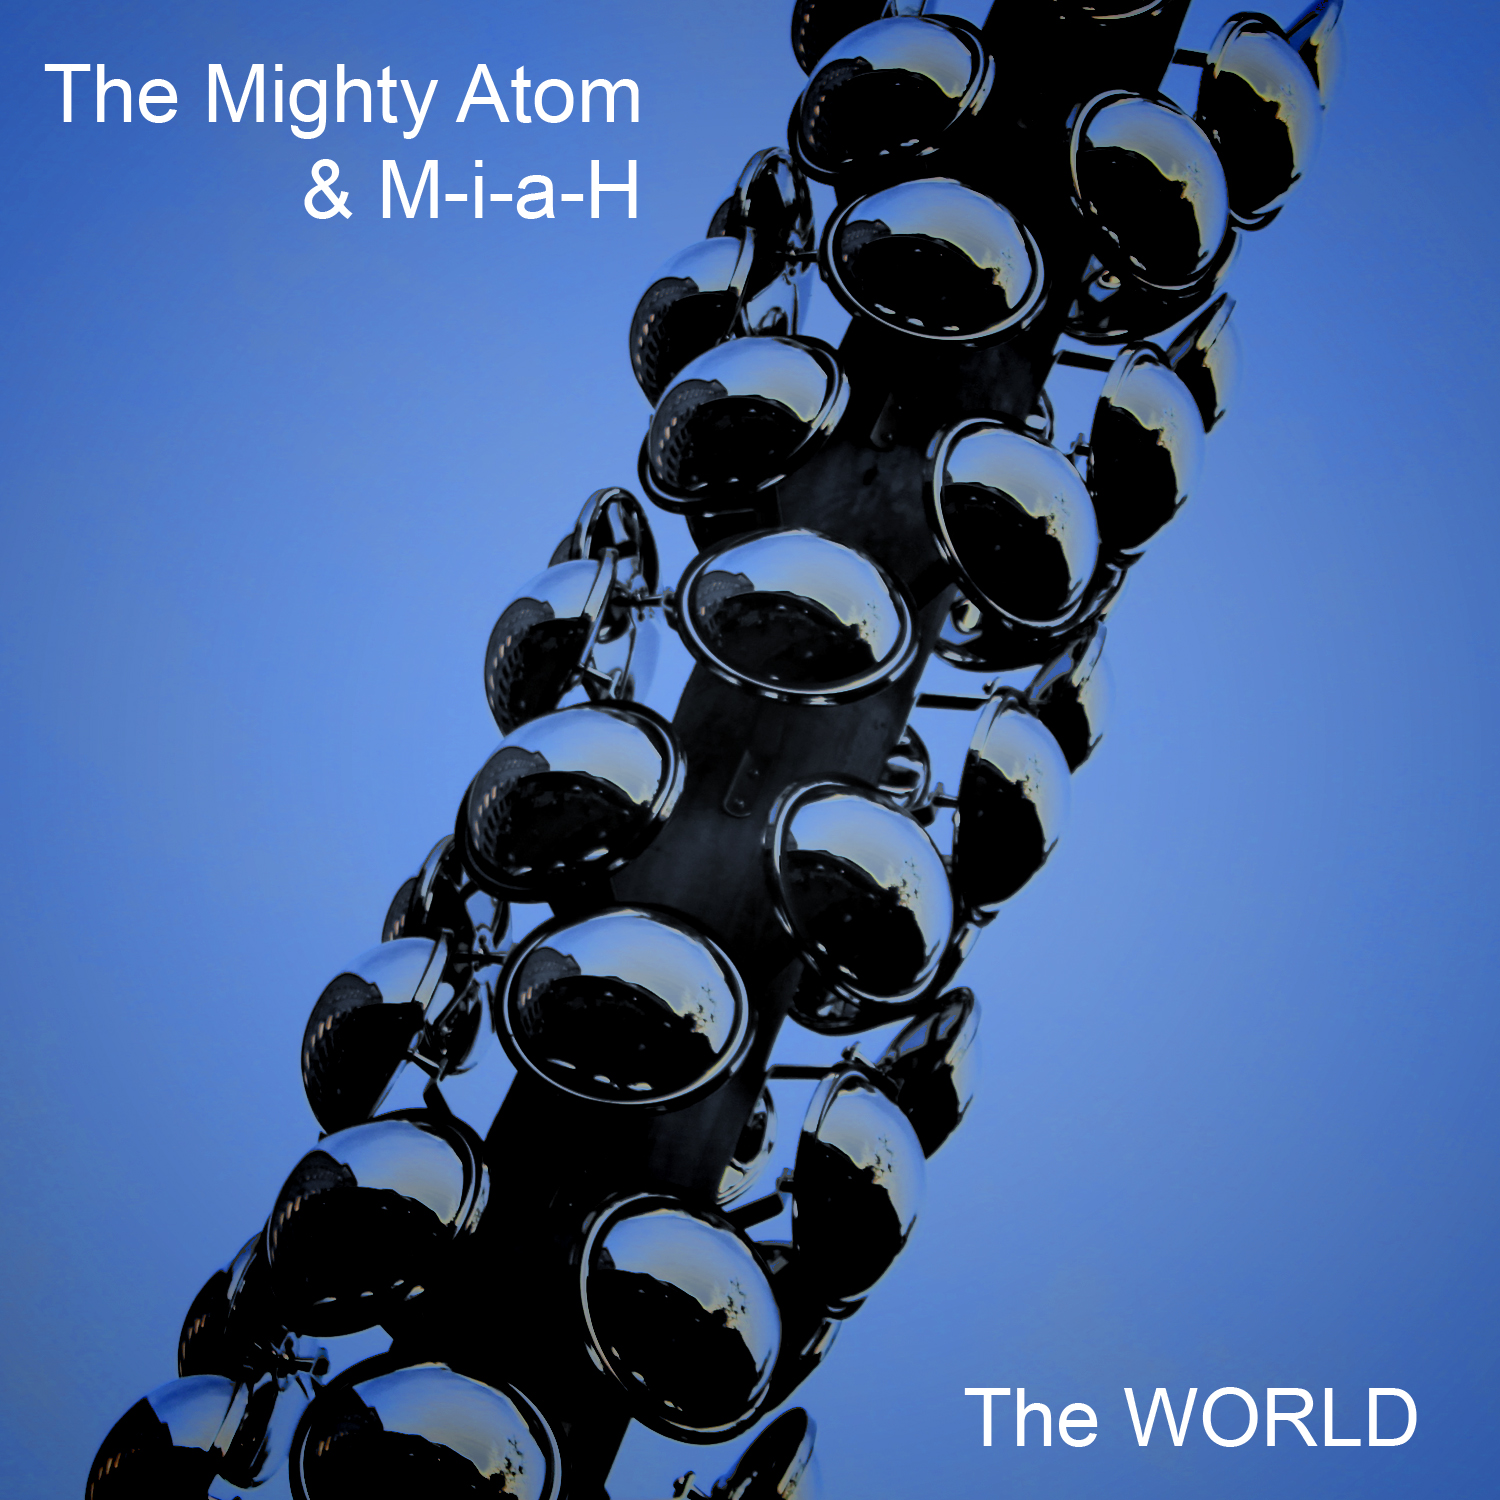 the mighty atom Titles read: the mighty atom location of evens unknown - probably united states of america brief shot of two small birds standing beside the world's.